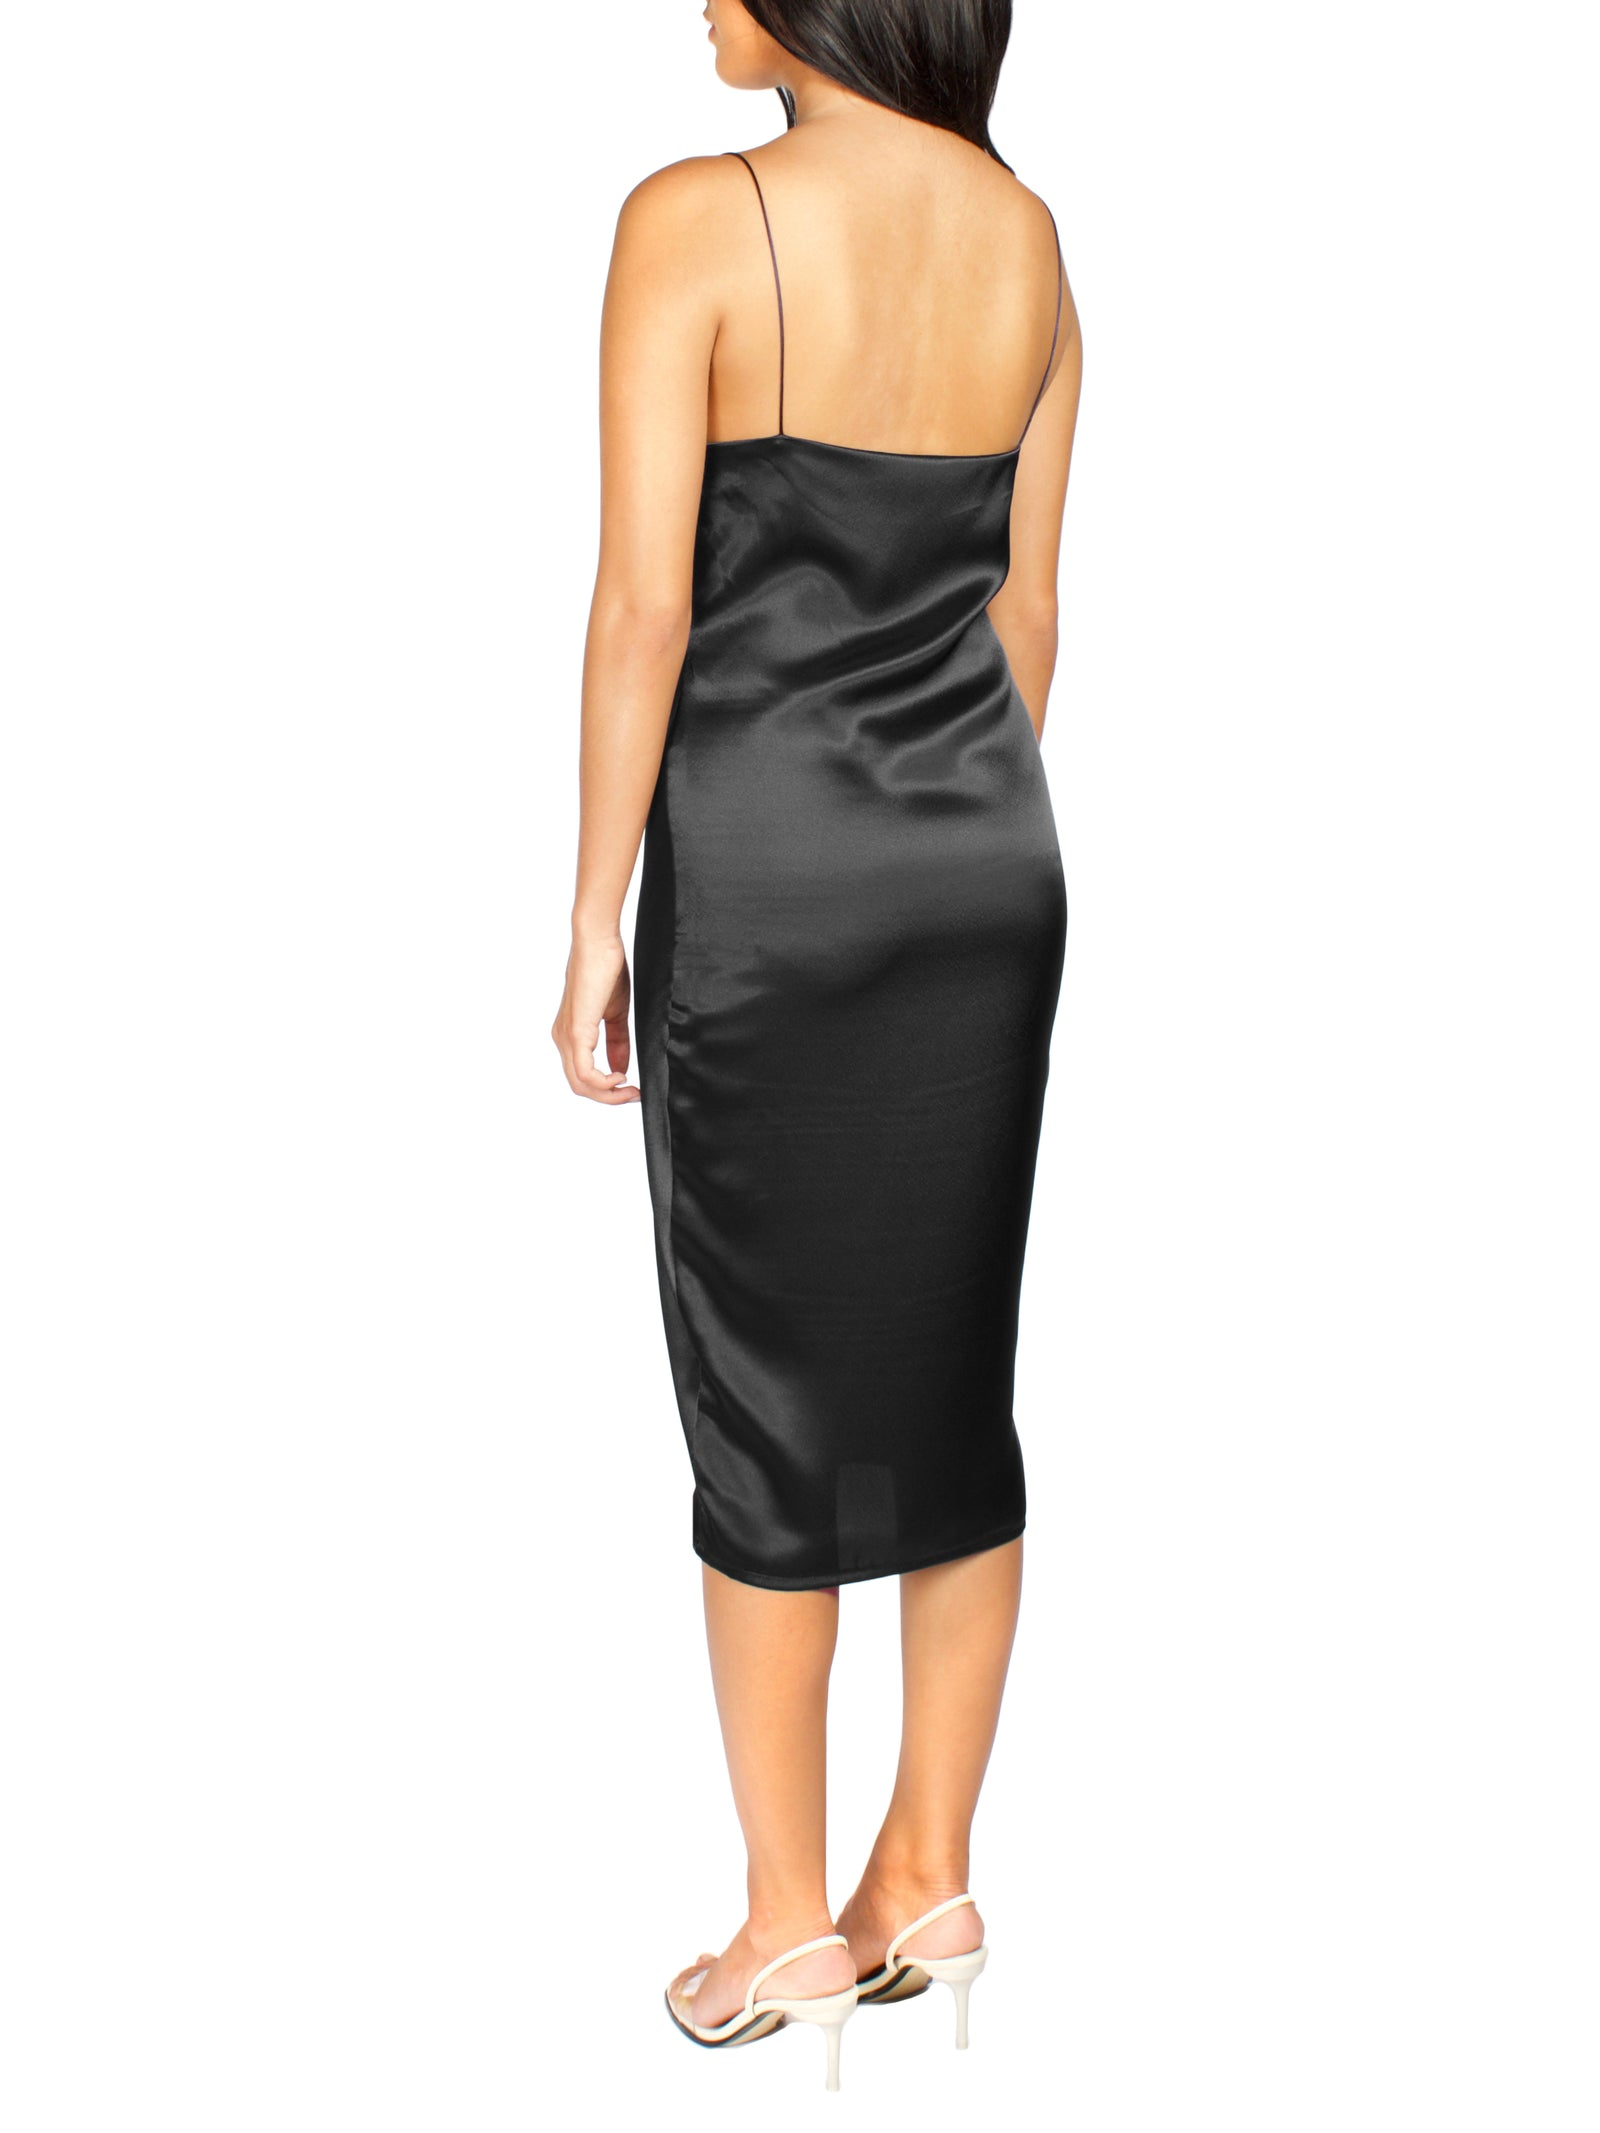 DREA Black MIDI Slip Dress - PRADEGAL